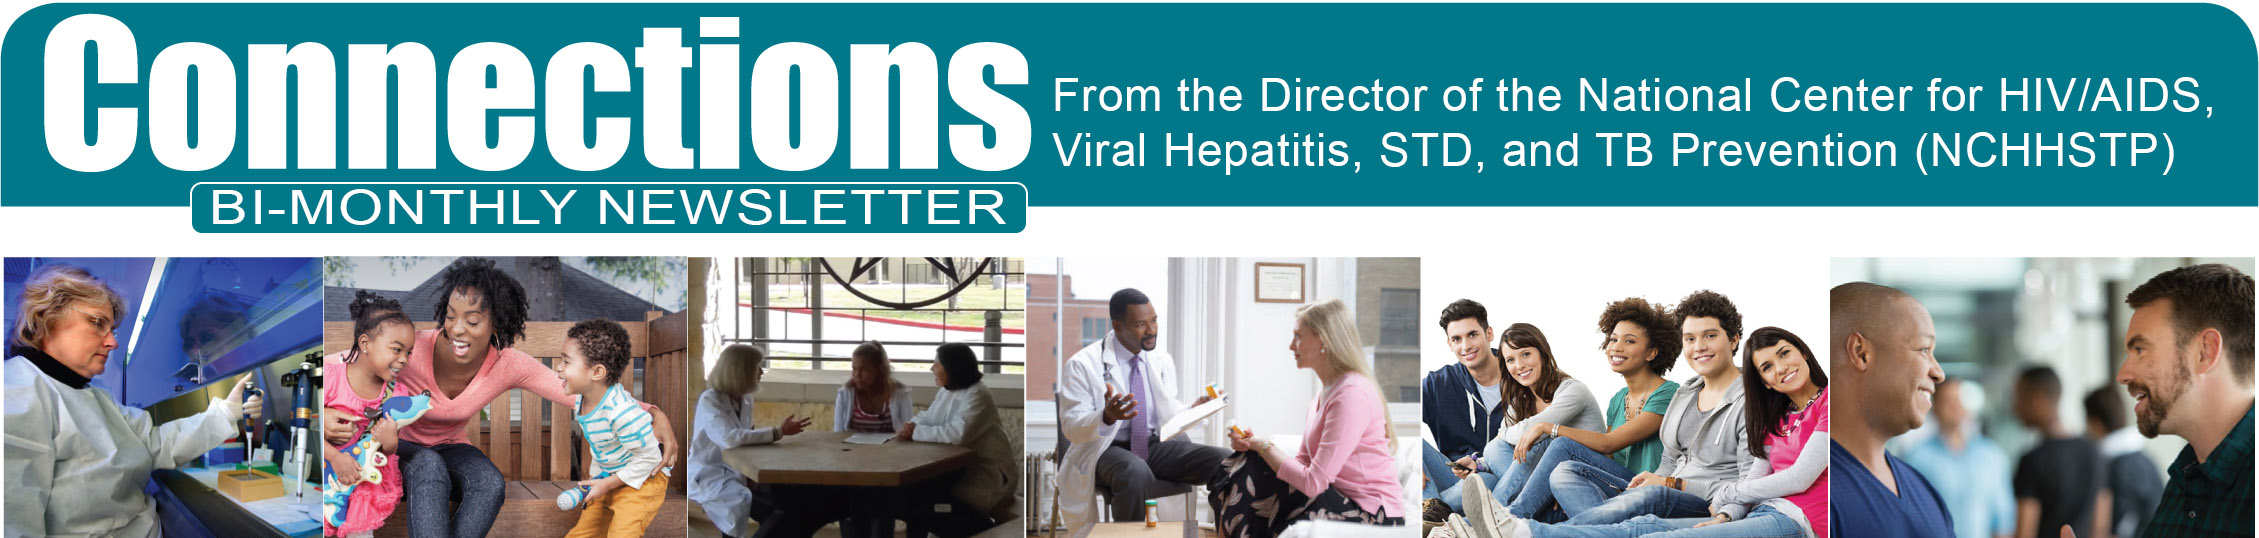 CONNECTIONS From the National Center for HIV/AIDS, Viral Hepatitis, STD, and TB Prevention